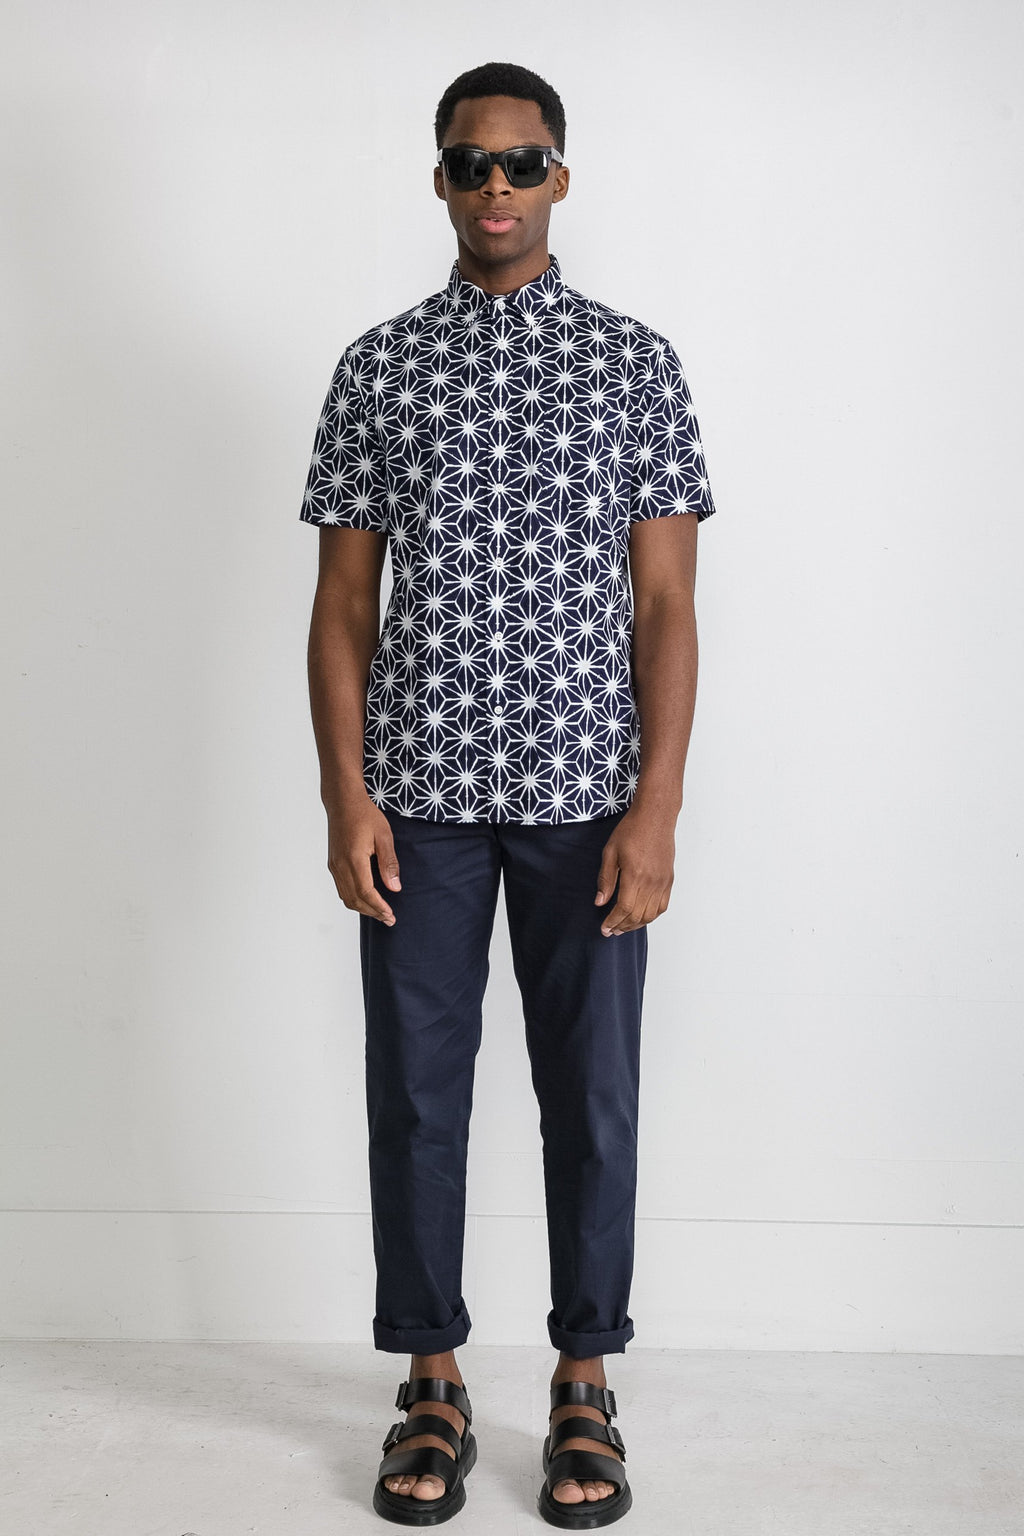 Japanese Asanoha Print in Navy and White 002